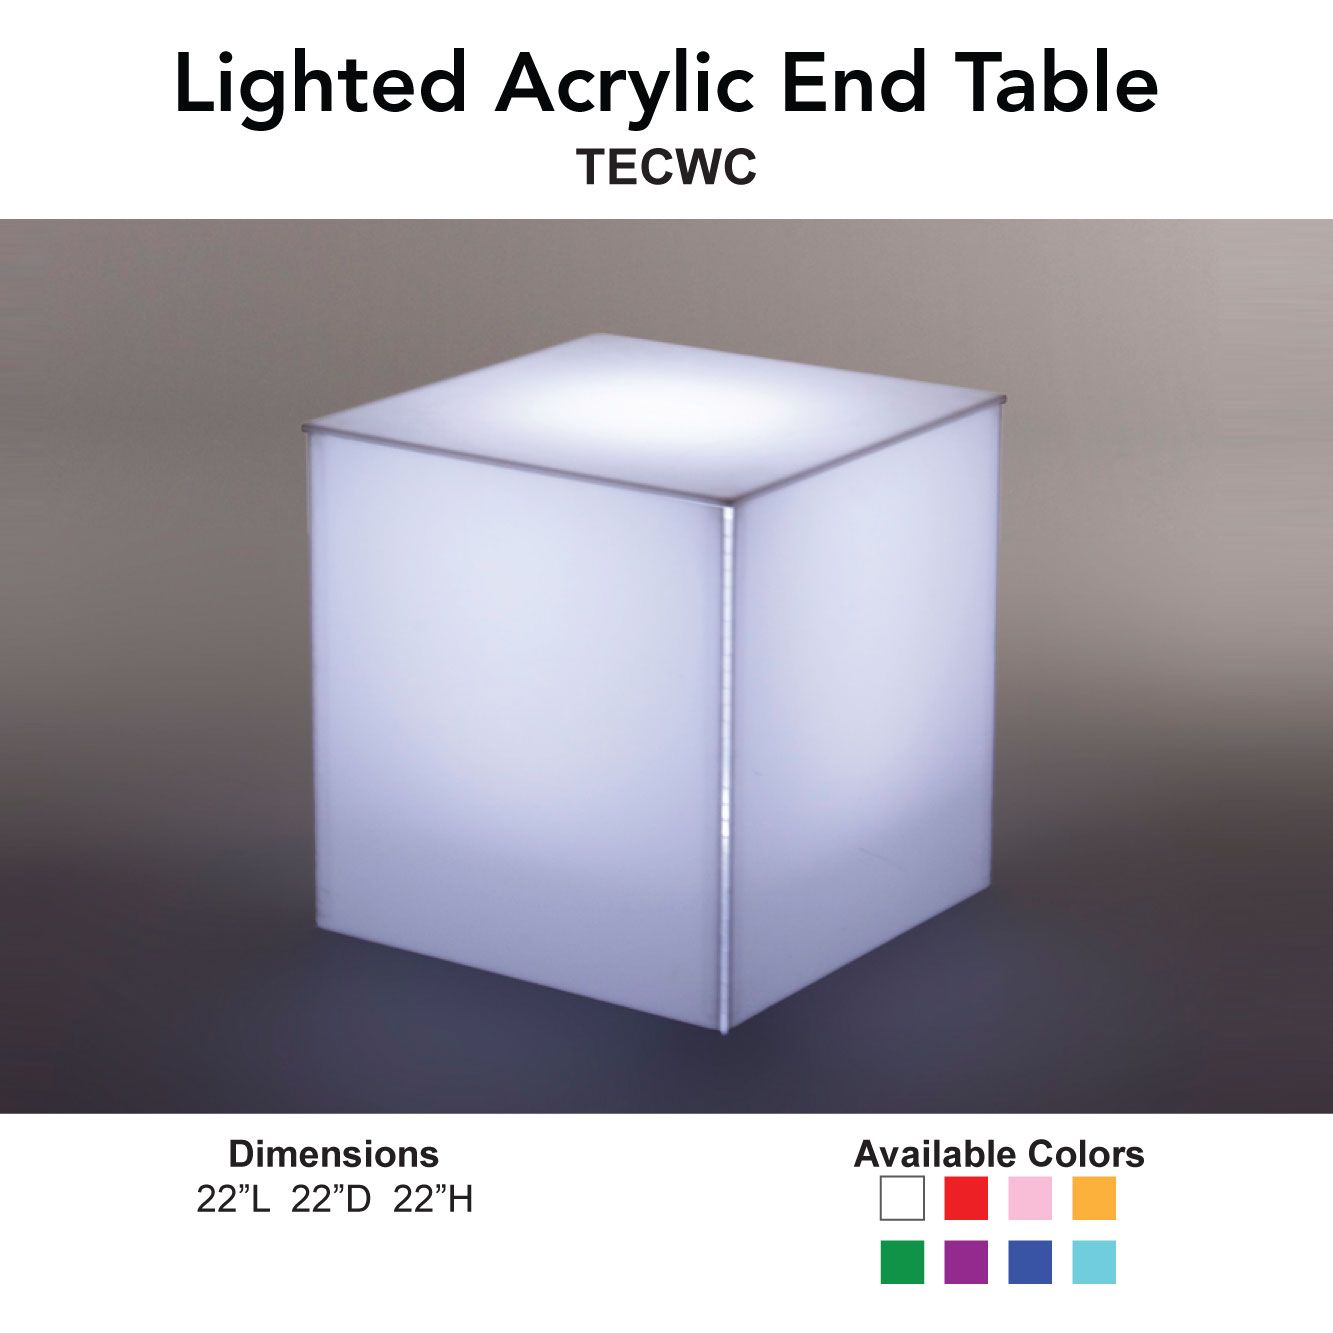 Lighted Acrylic End Table 24 Seven Productions